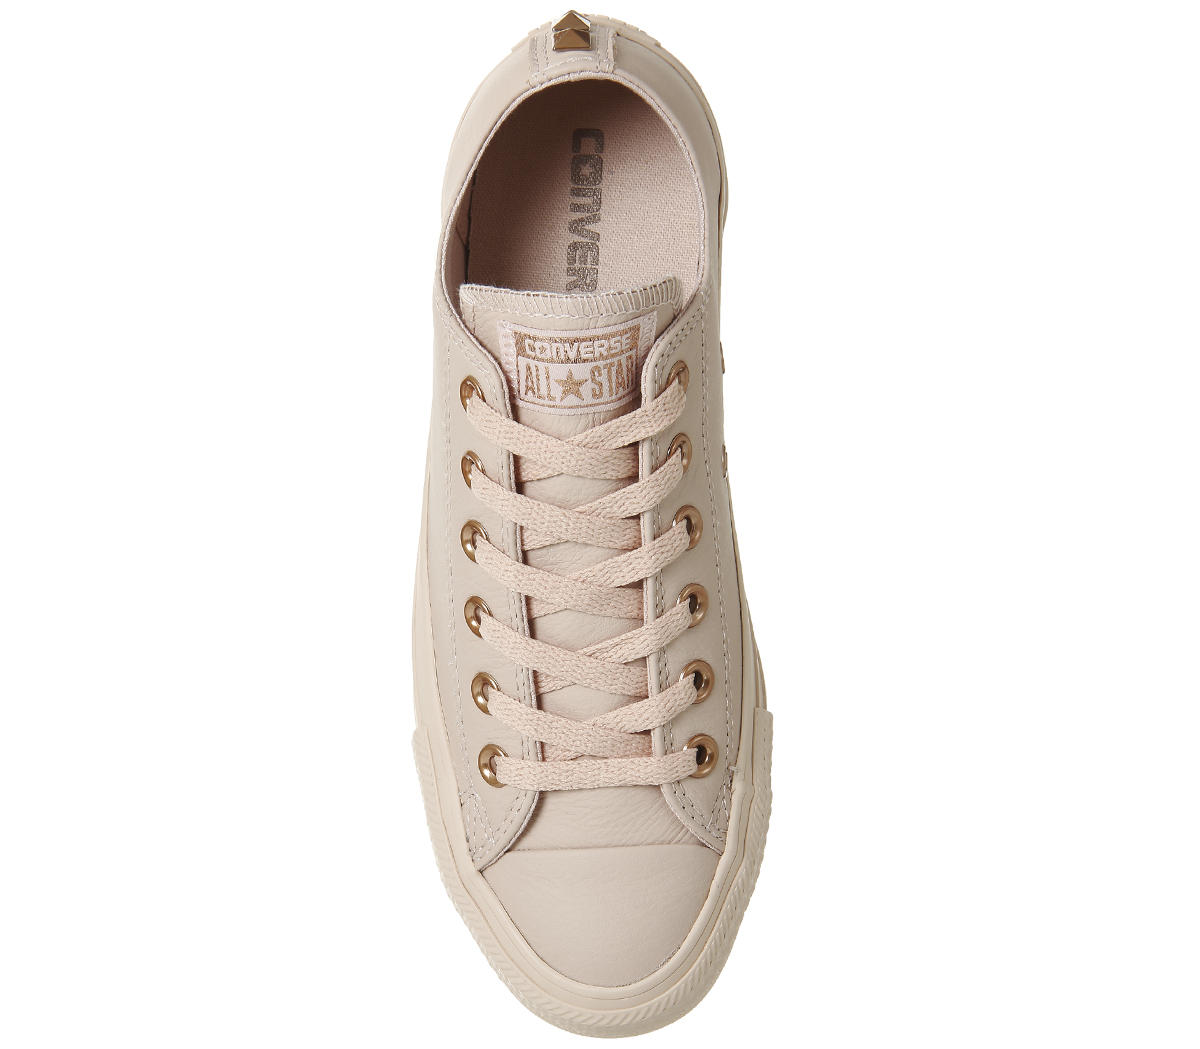 b48418048251 Sentinel Womens Converse All Star Low Leather Dust Pink Stud Exclusive  Trainers Shoes